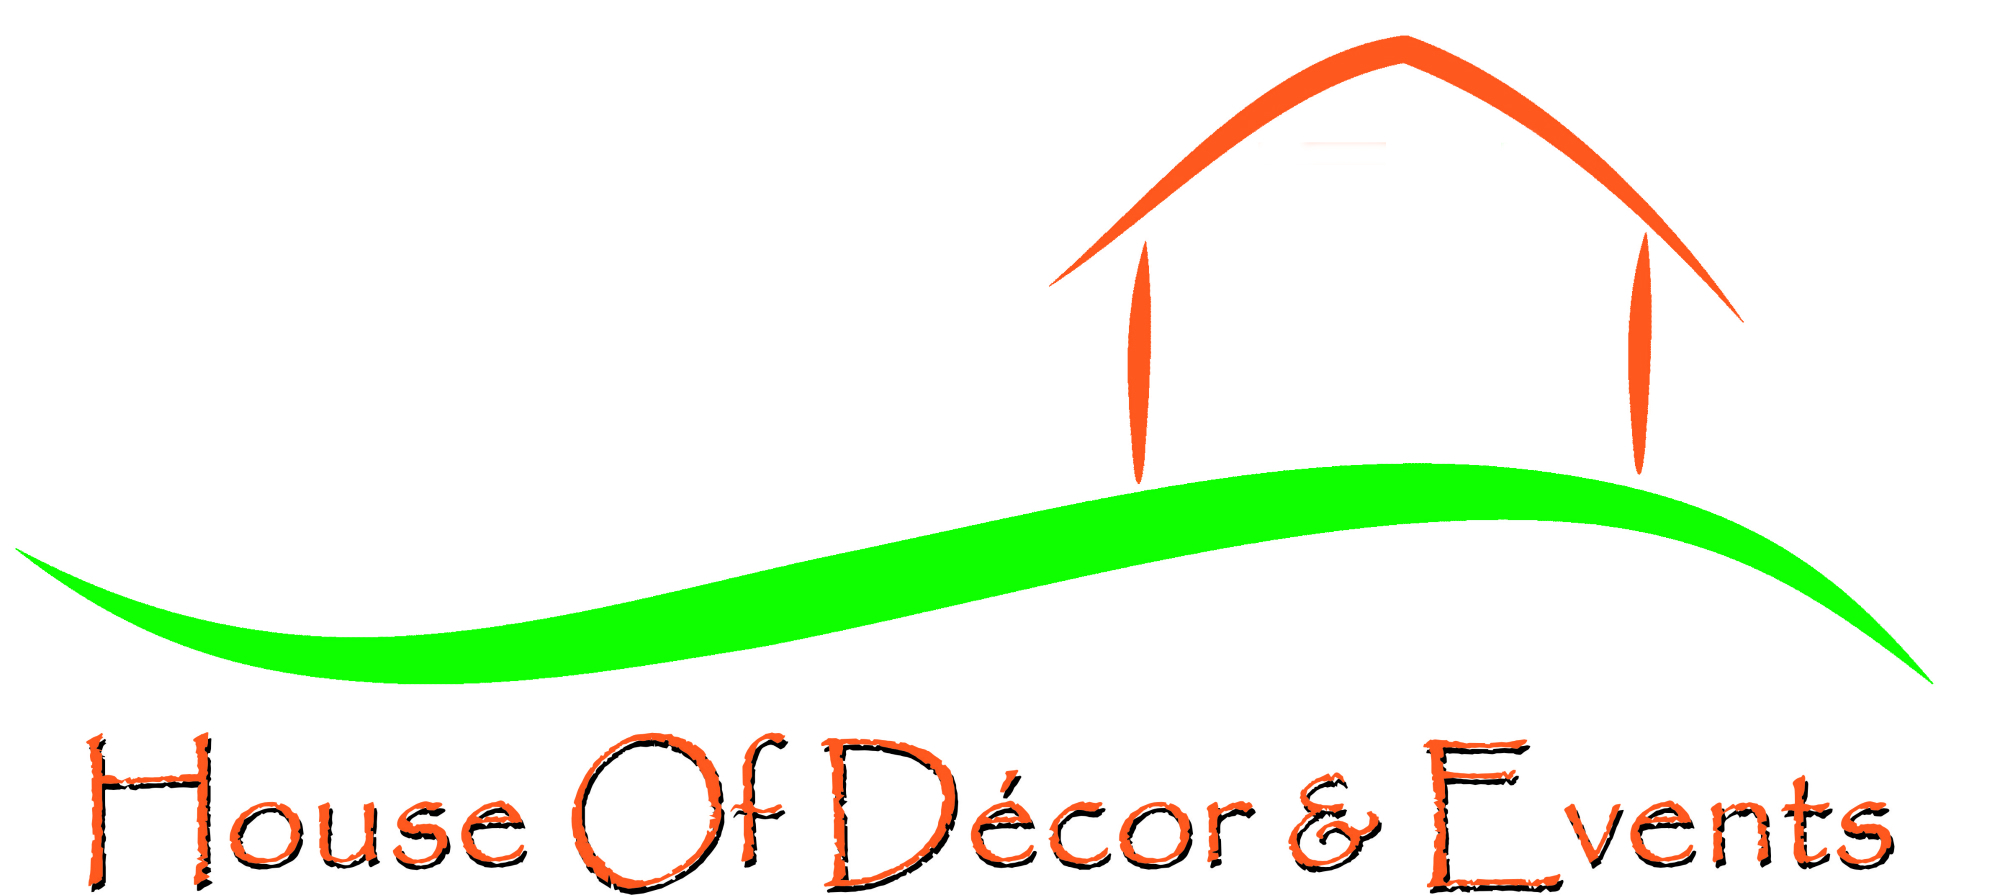 House of Decor and Events